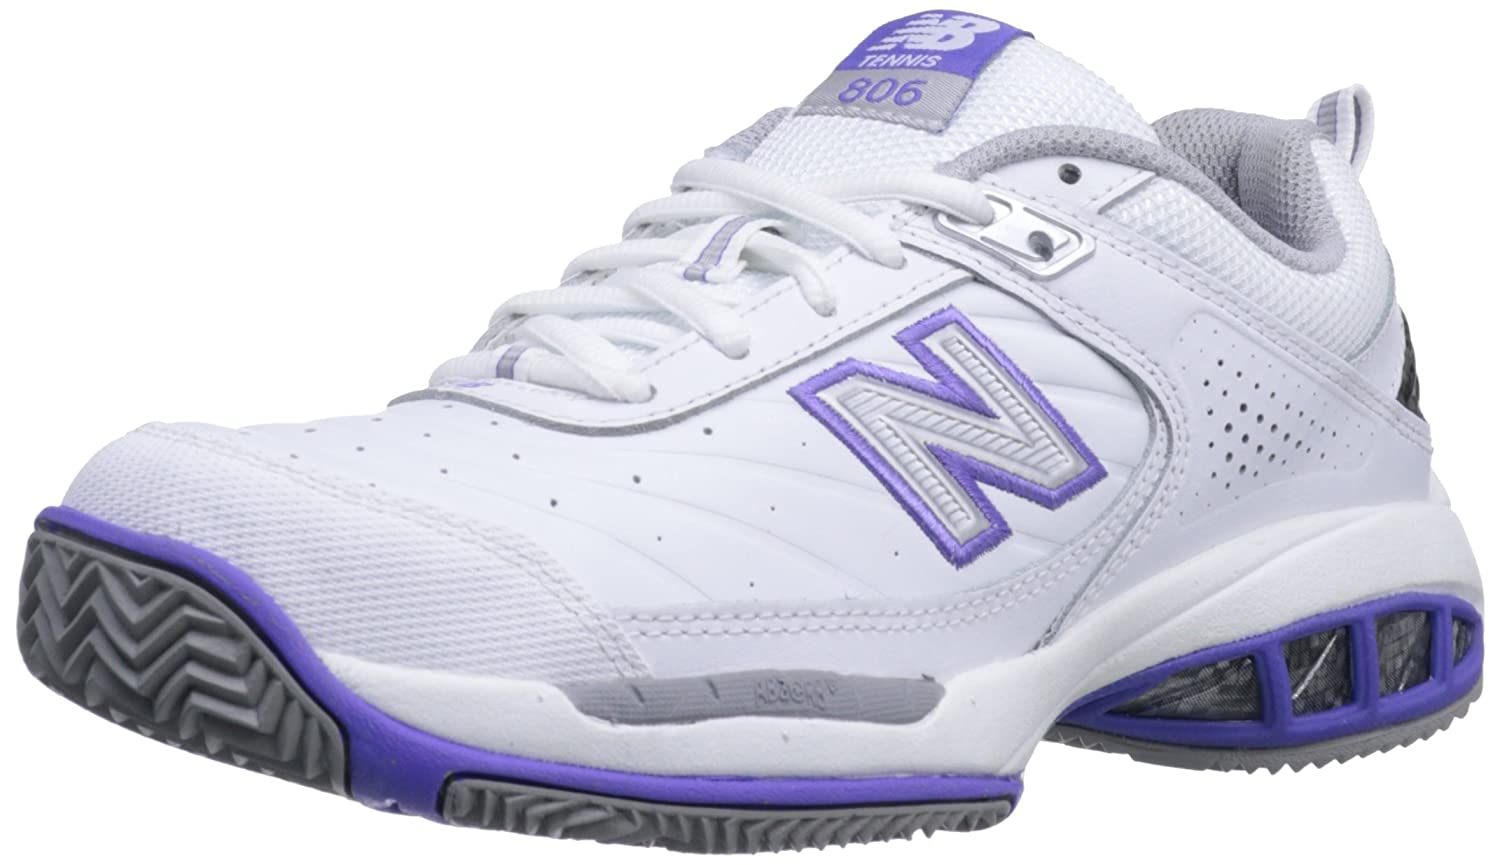 New Balance Women's WC806 Tennis-W Tennis Shoe B0098G2KBY 7.5 B(M) US|White